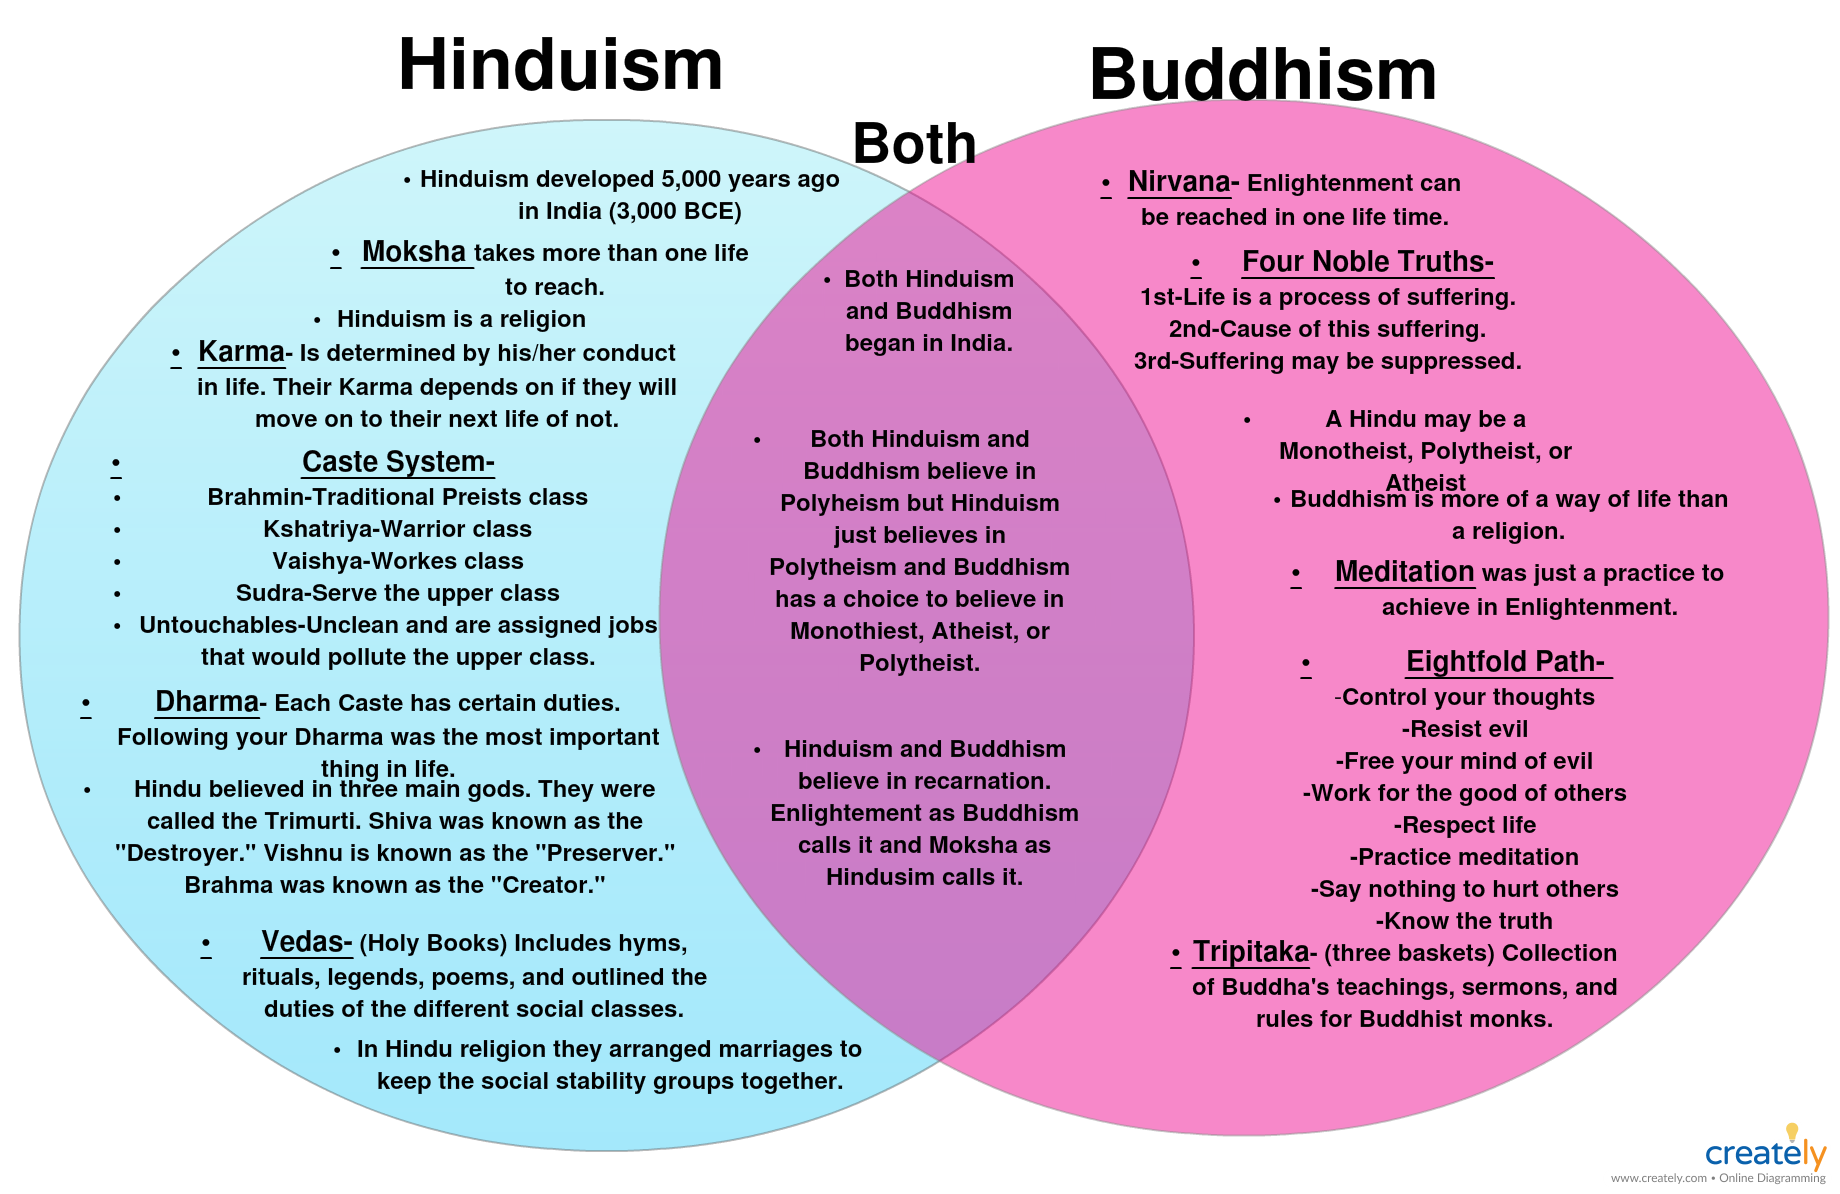 small resolution of venn diagrams shows the similarities between hinduism and buddhism you can use this example for a class project or and educational purposes by simply